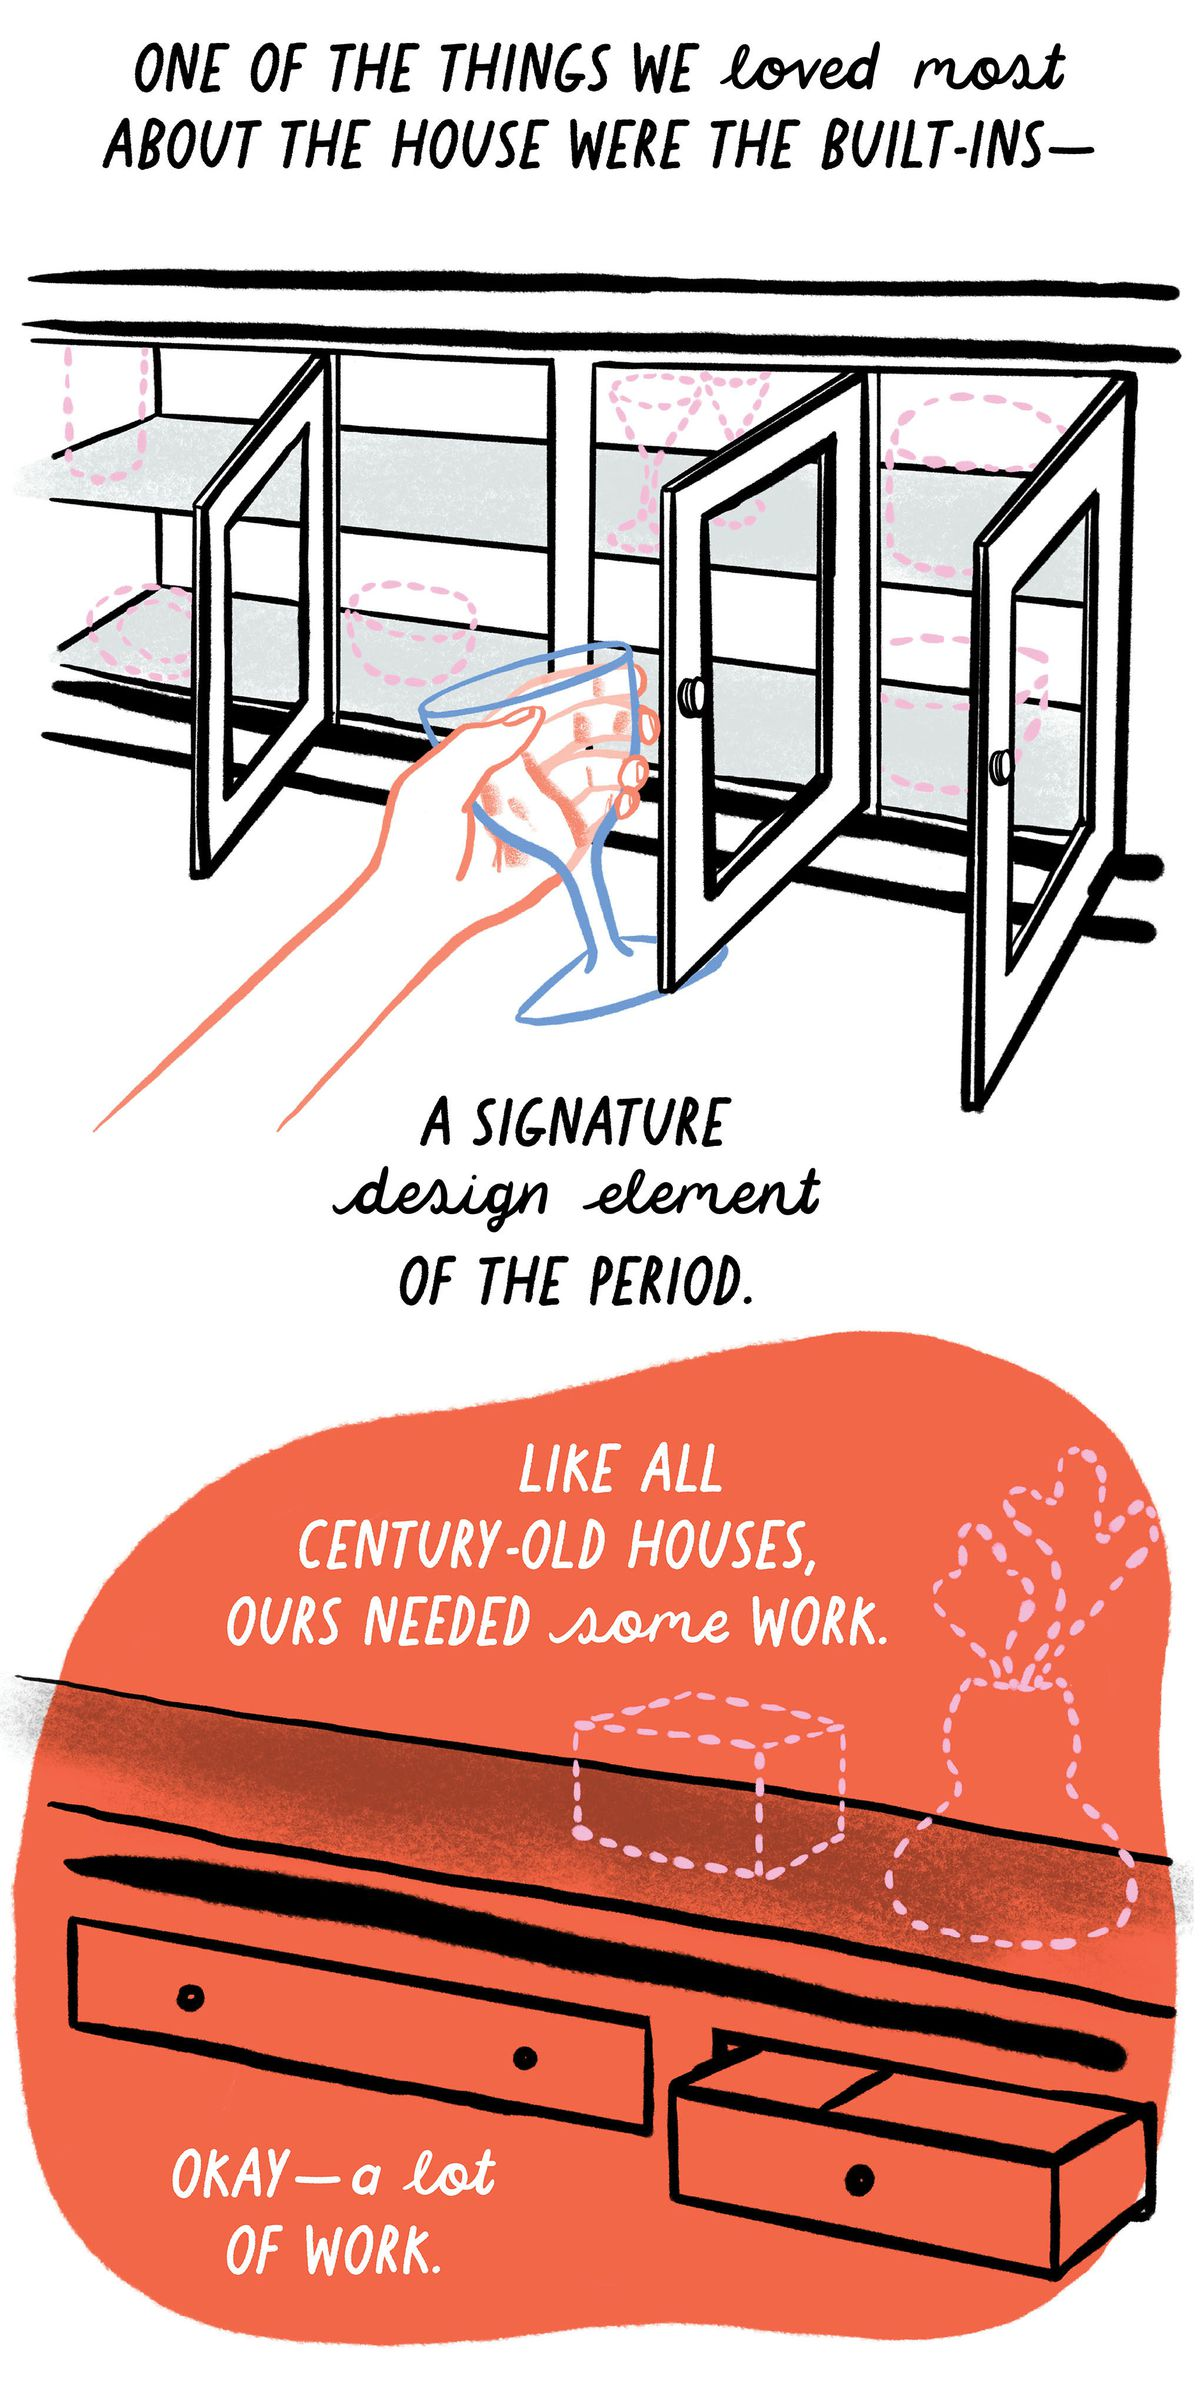 One of the things we loved most about the house were the built-ins—a signature design element of the period. Like all century-old houses, ours needed some work. Okay—a lot of work.